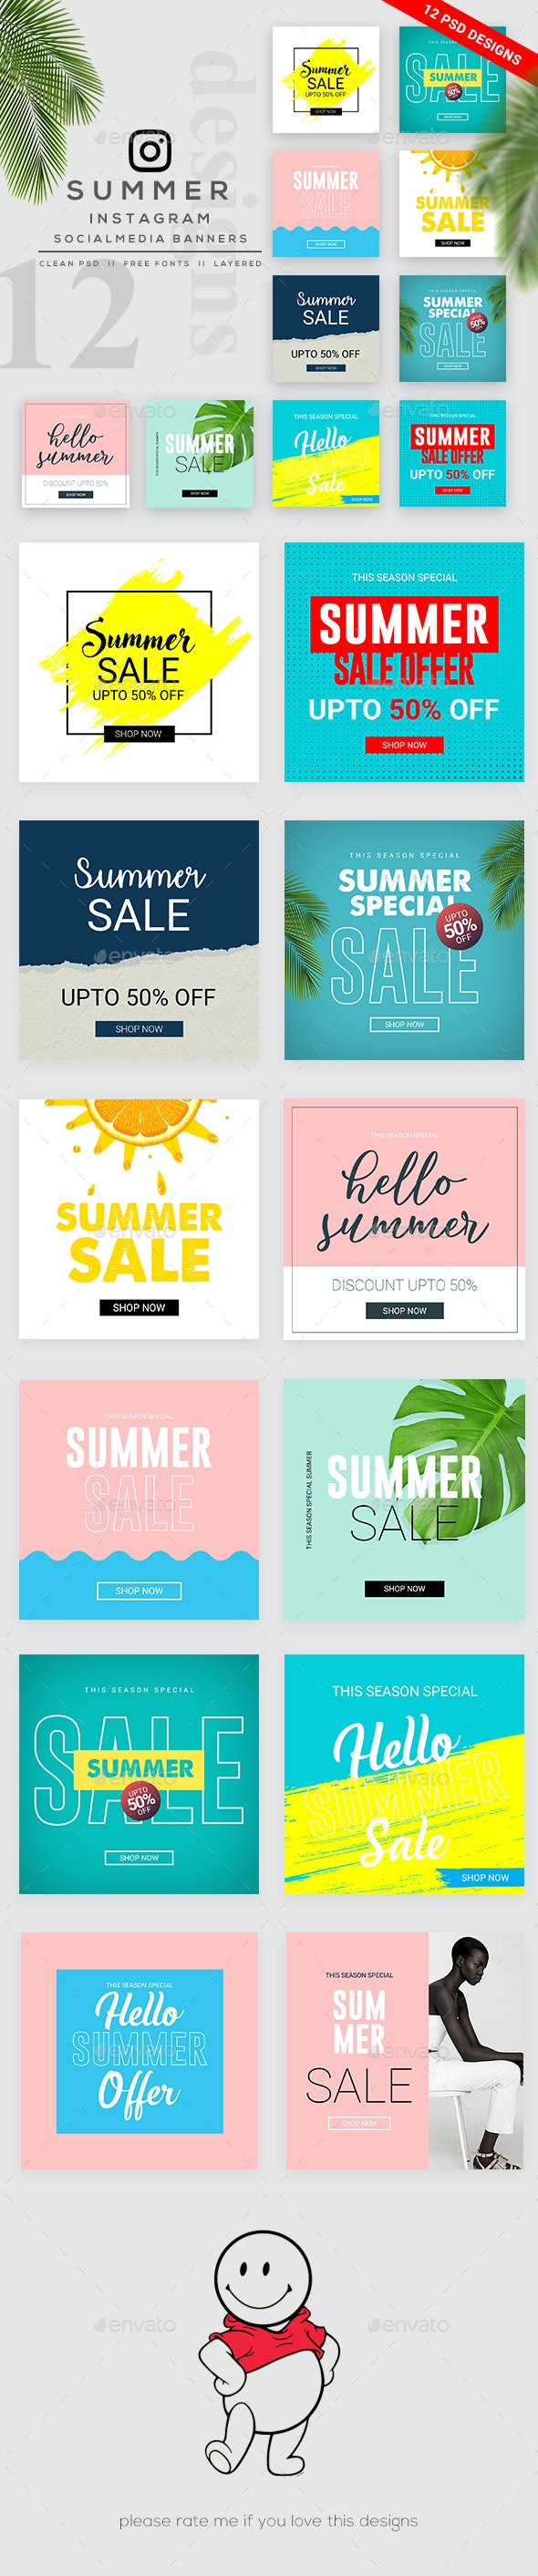 Summer Sale Instagram Banner - Banners & Ads Web Elements